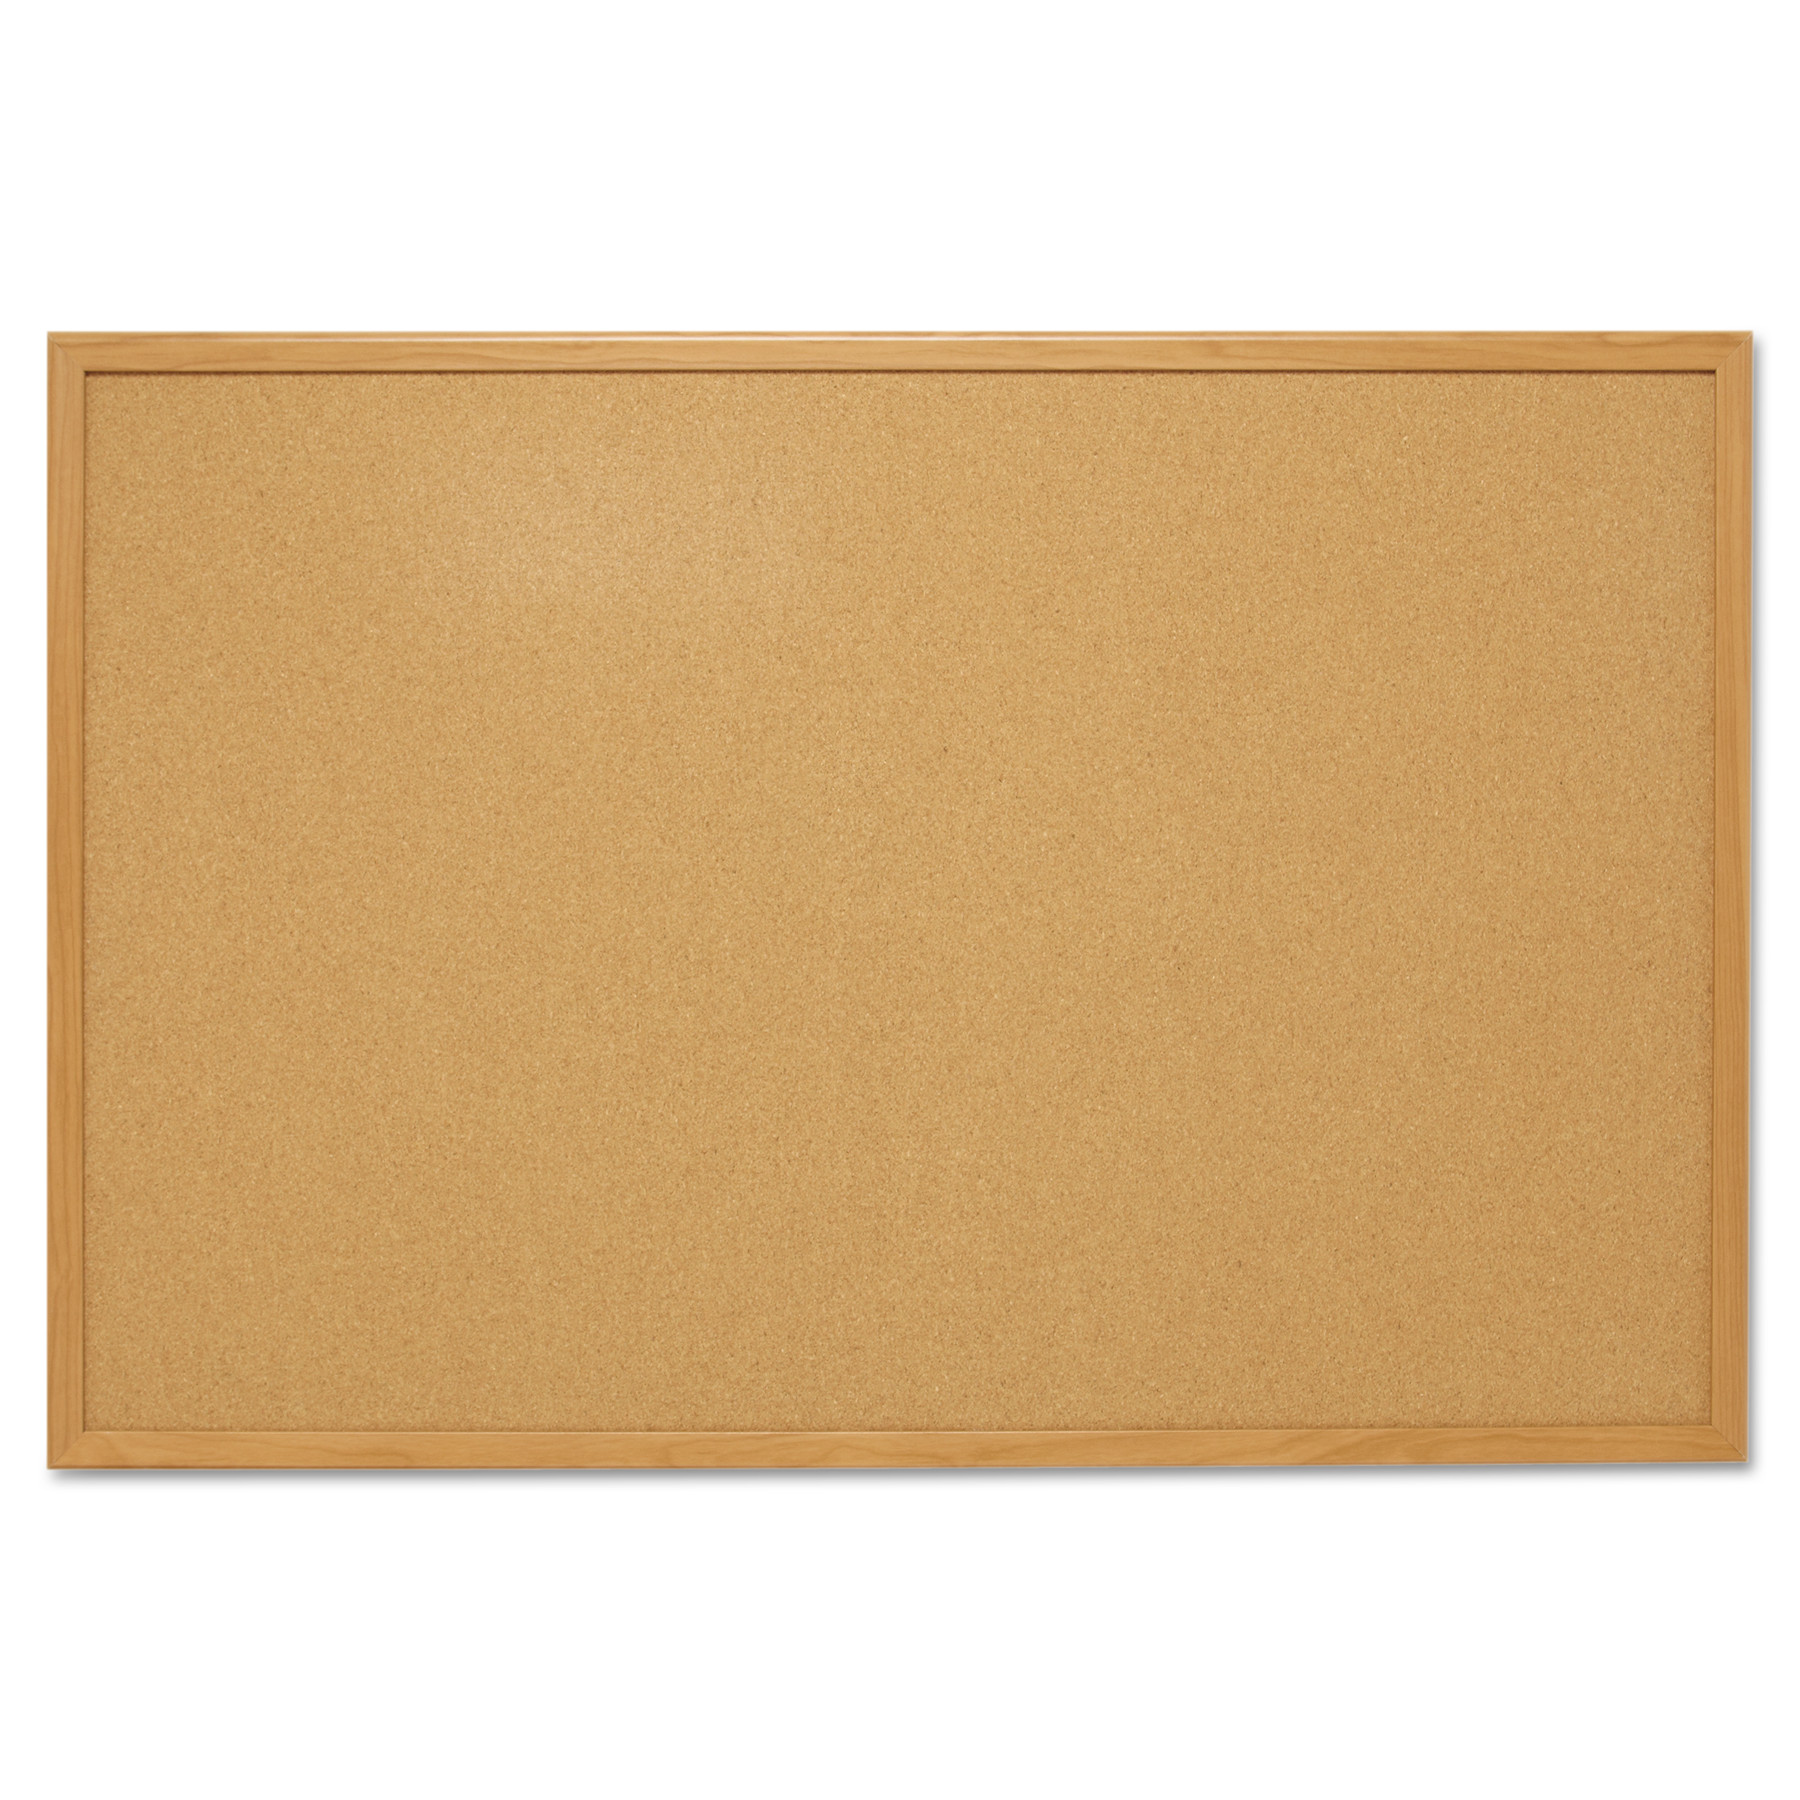 Mead Cork Bulletin Board, 4' x 3', Oak Frame (S774)